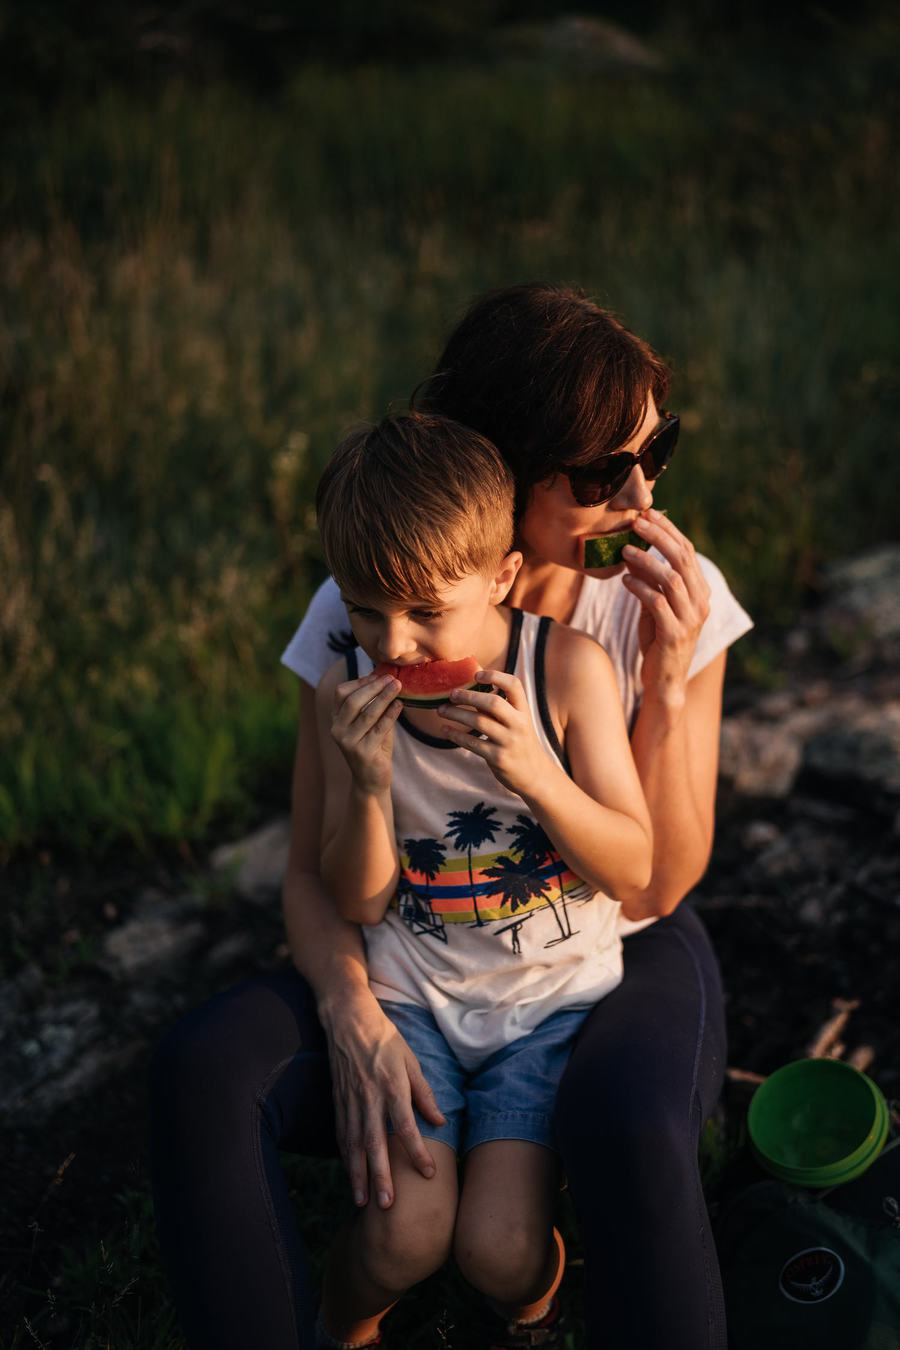 Mom and son take break during Catskill hike to eat watermelon